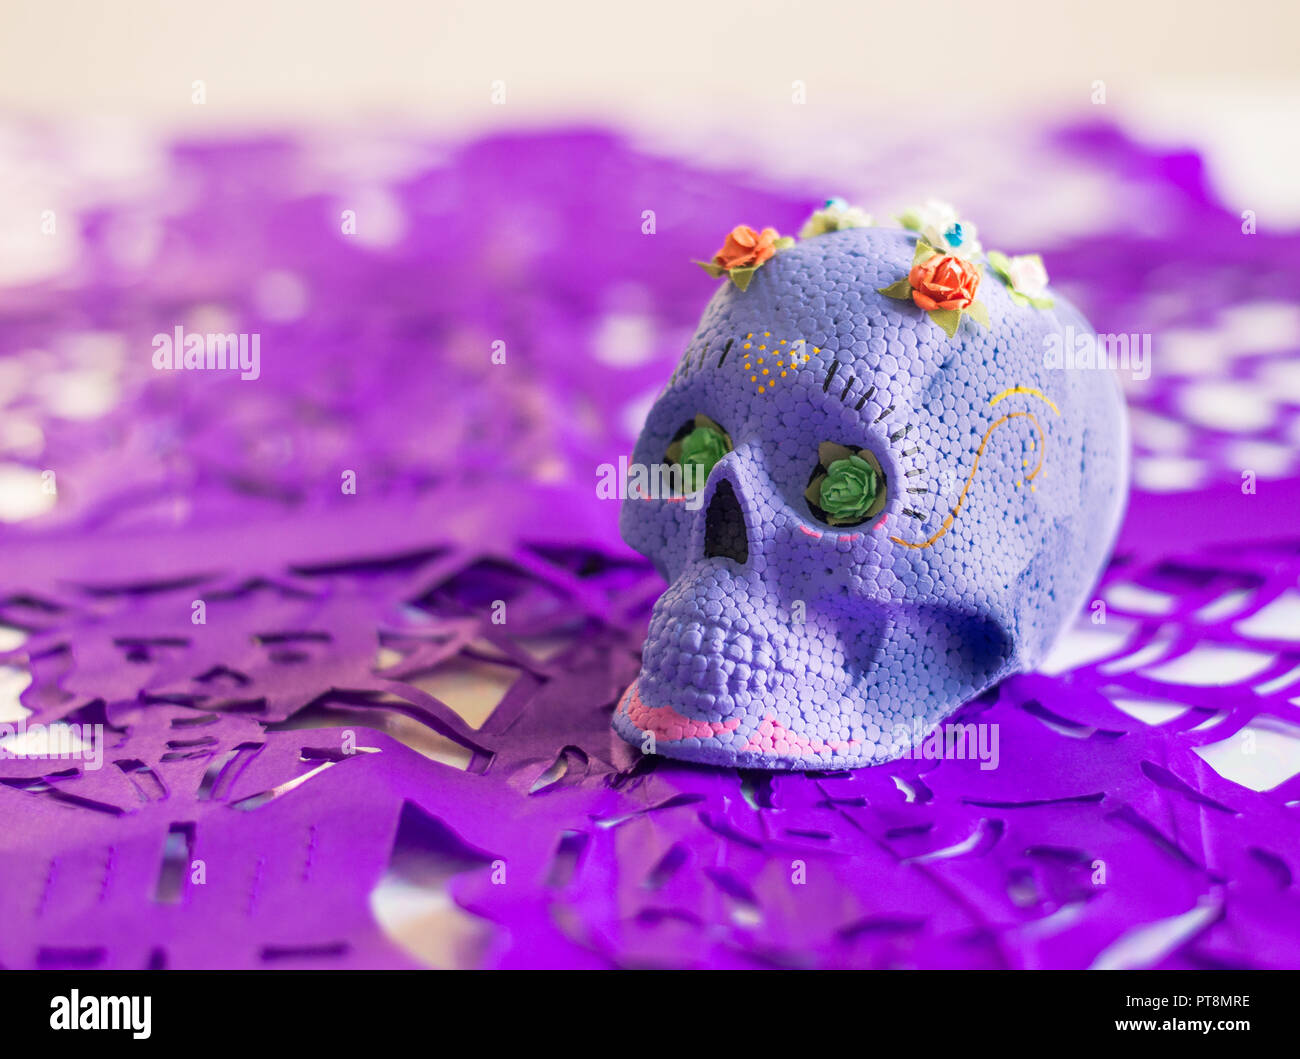 Purple Day Of The Dead Sugar Skull With Flowers On Top And Purple